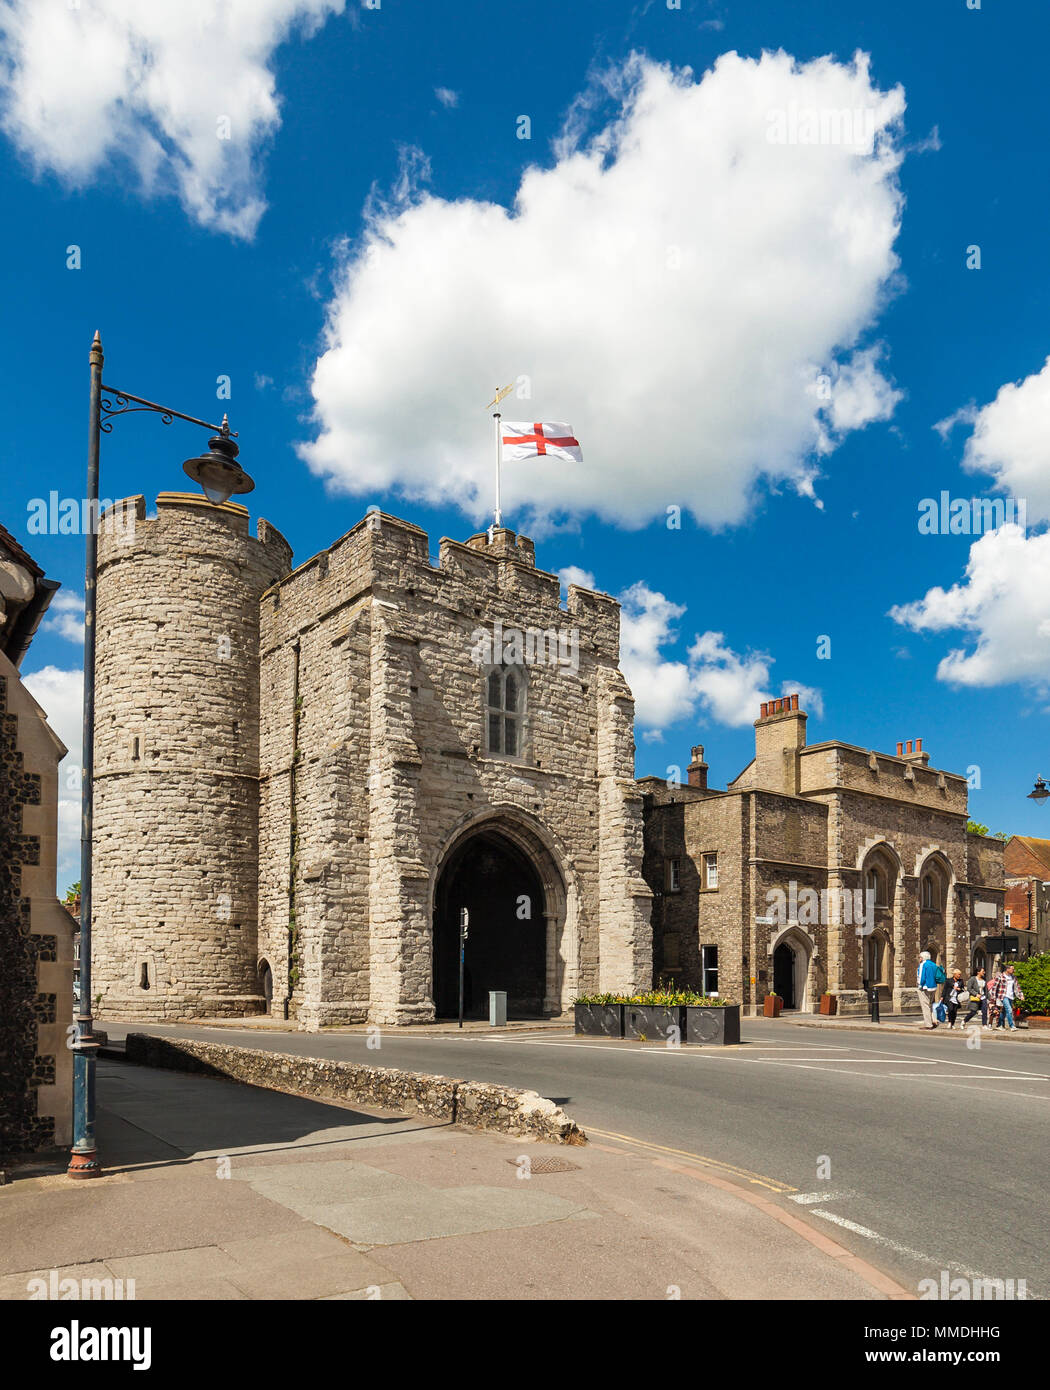 Westgate Towers and the Pound, Canterbury, Kent. - Stock Image